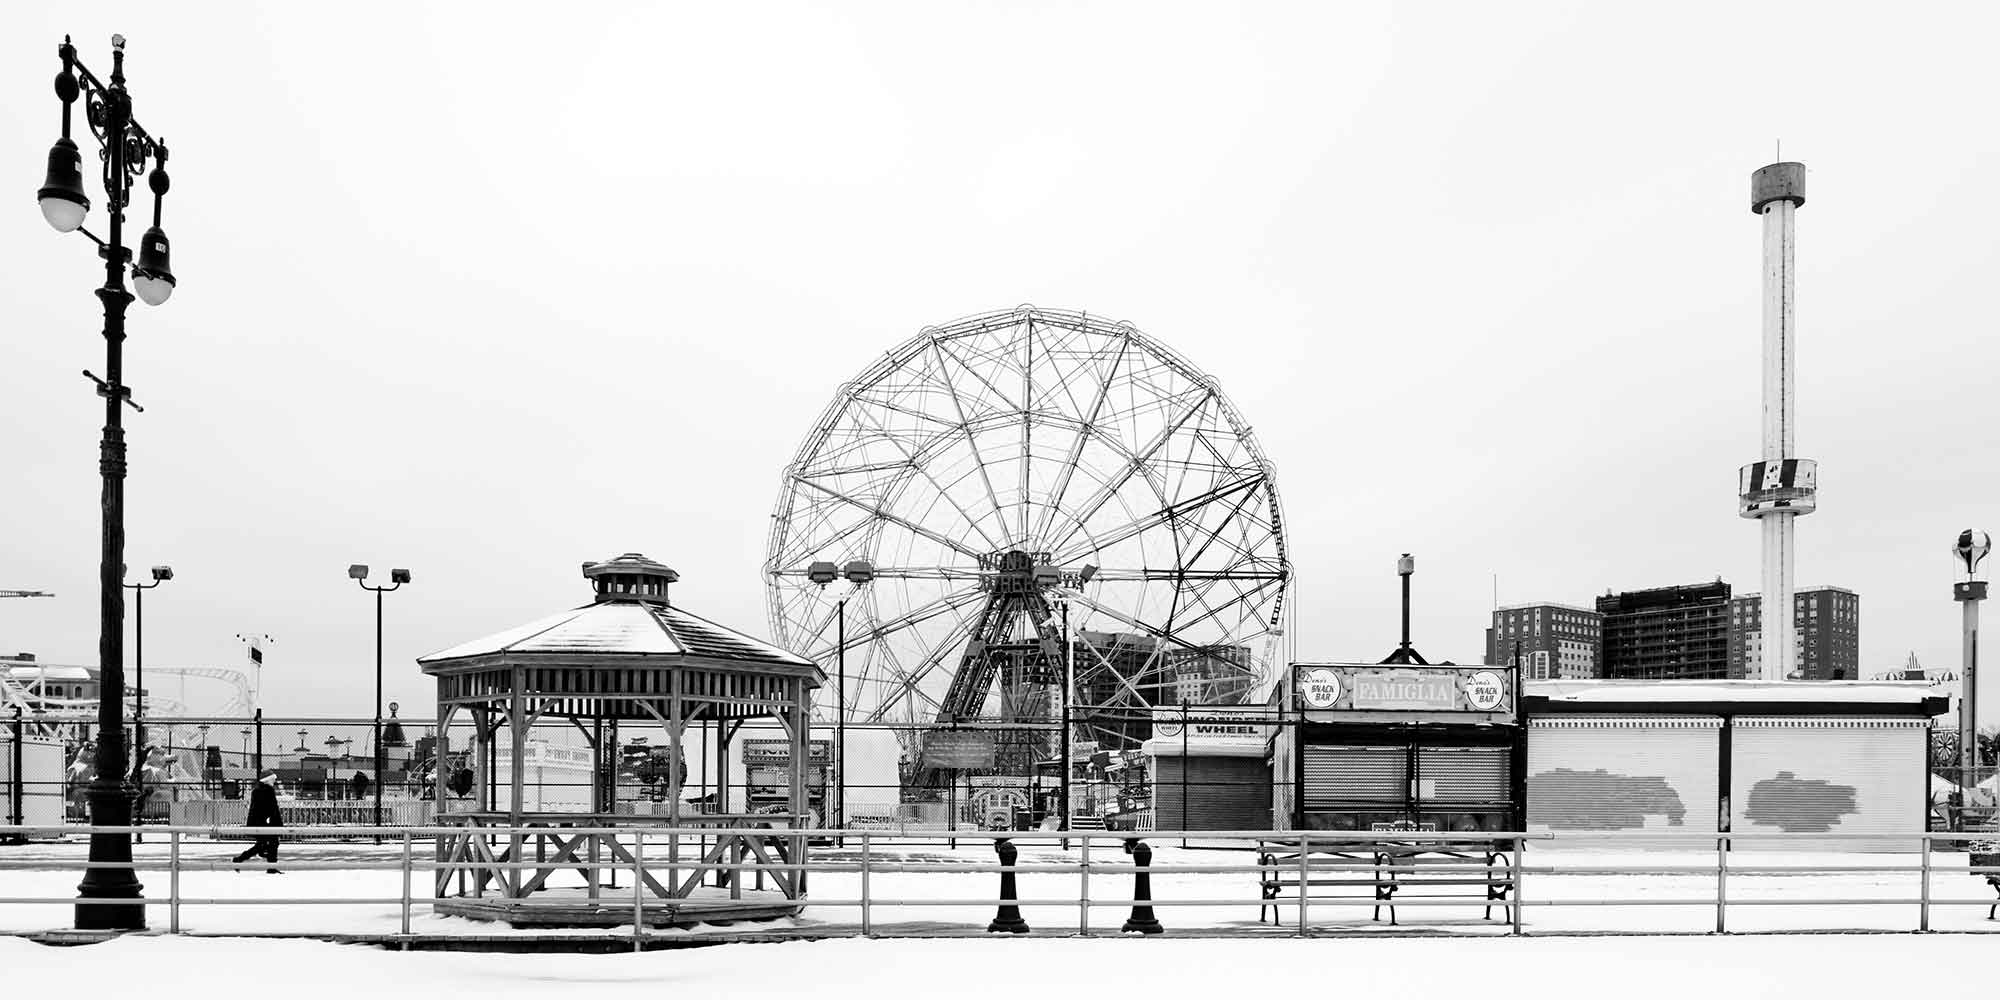 Coney Island Boardwalk Vintage